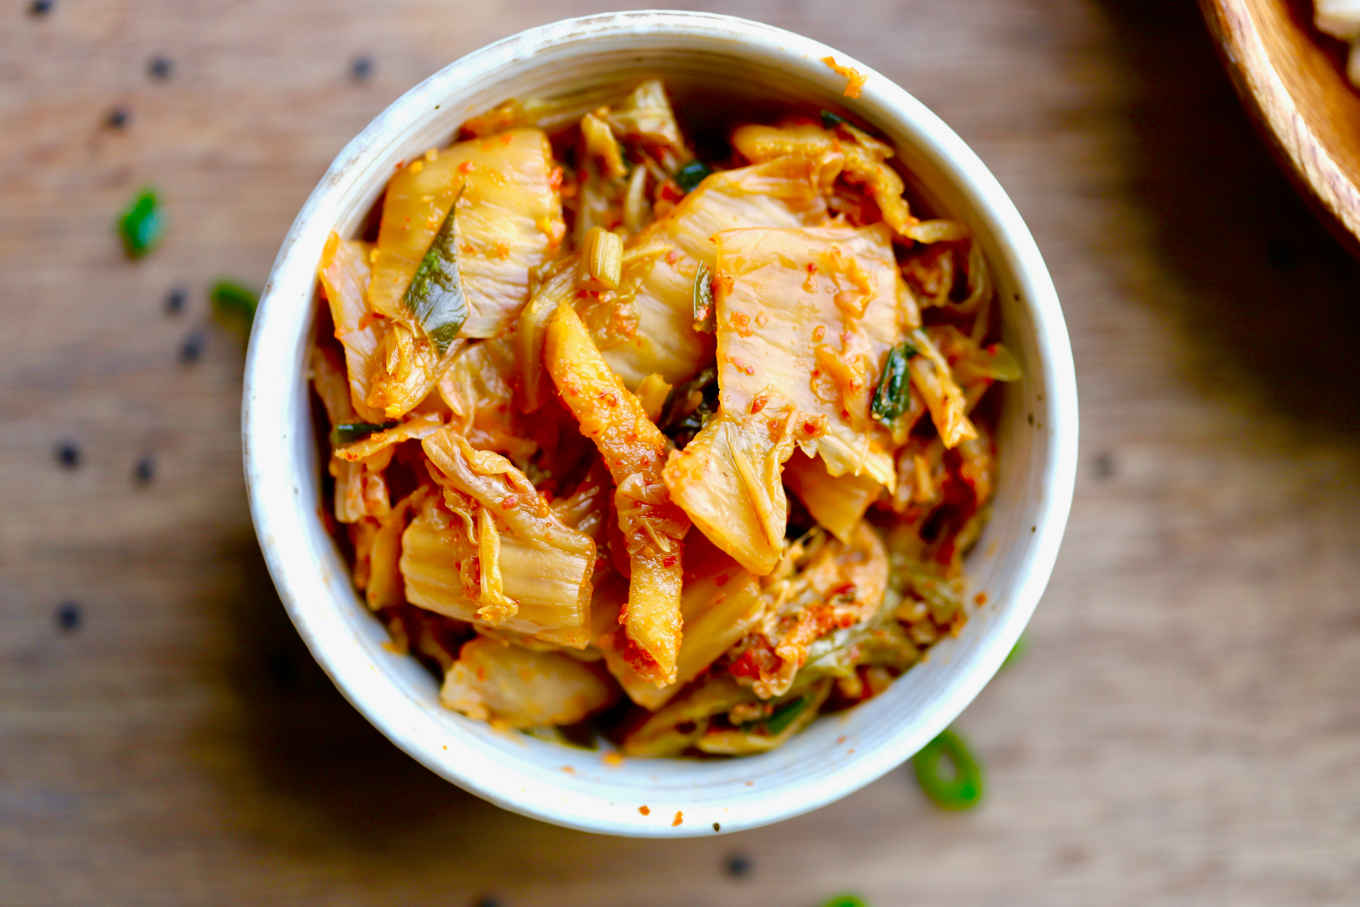 overhead shot of a bowl of probiotic fermented kimchi